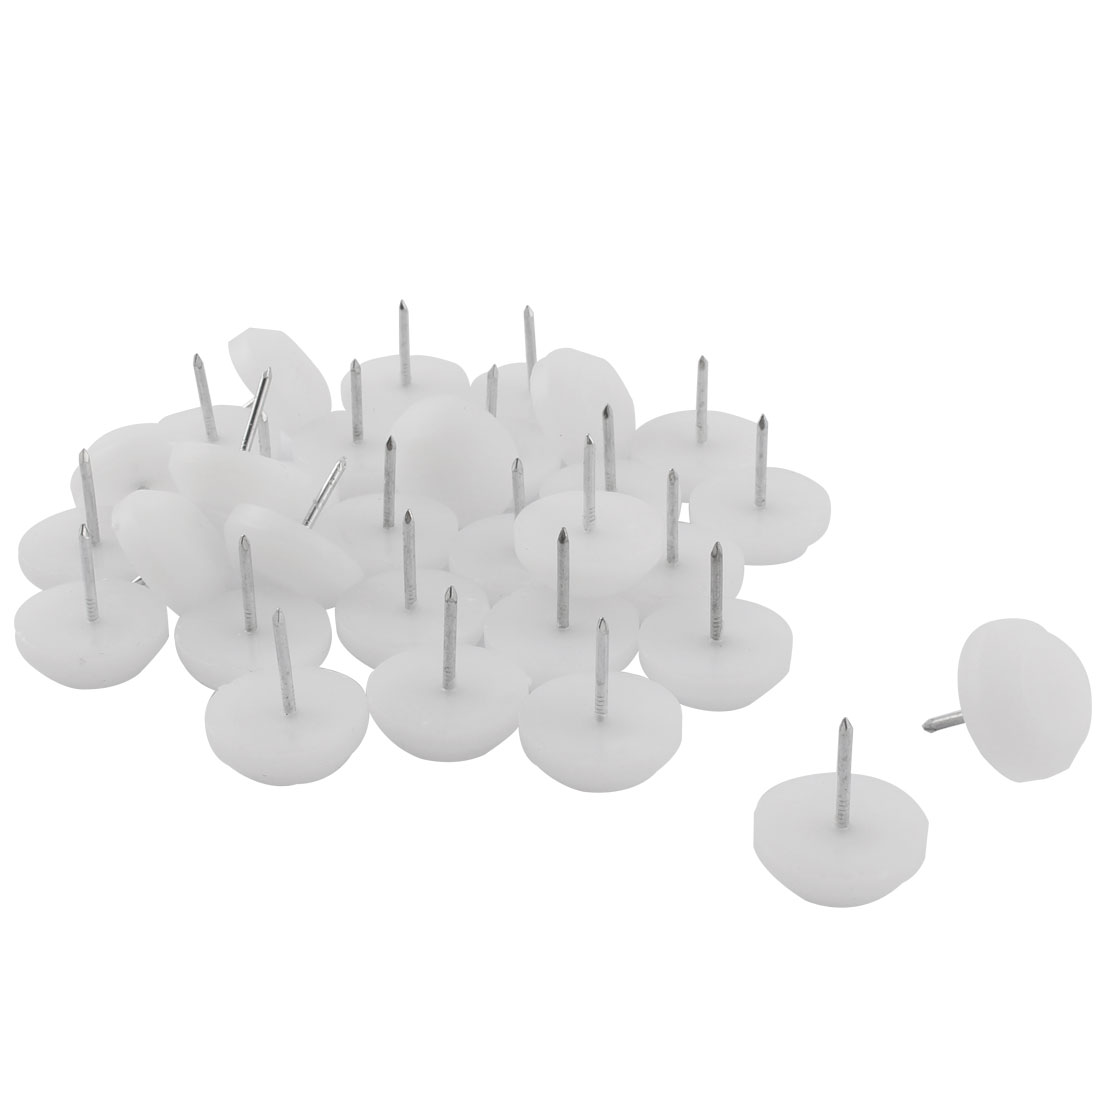 Furniture Table Chair Plastic Base Leg Floor Protector Nails Pad White 2.3cm Dia 30pcs